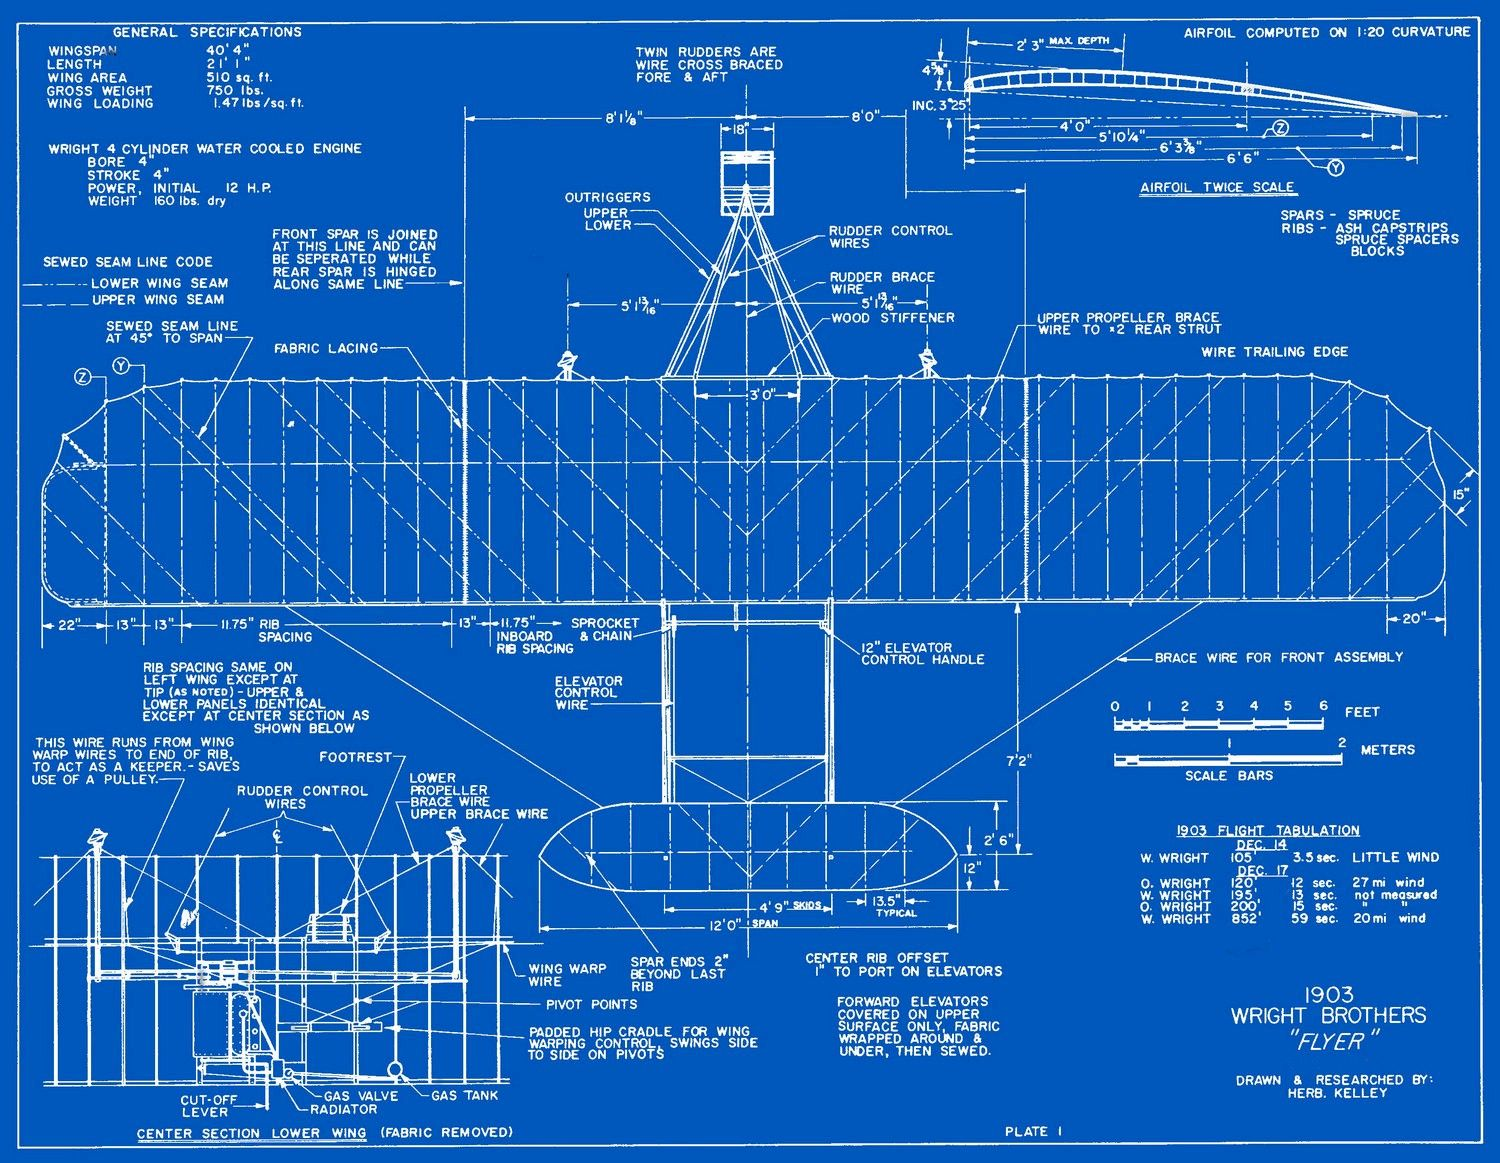 Wright brothers plans google zoeken vliegtuigen doorheen de wright flyer plans and drawings part of the wright brothers aeroplane company a virtual museum of pioneer aviation the invention of the airplane malvernweather Image collections